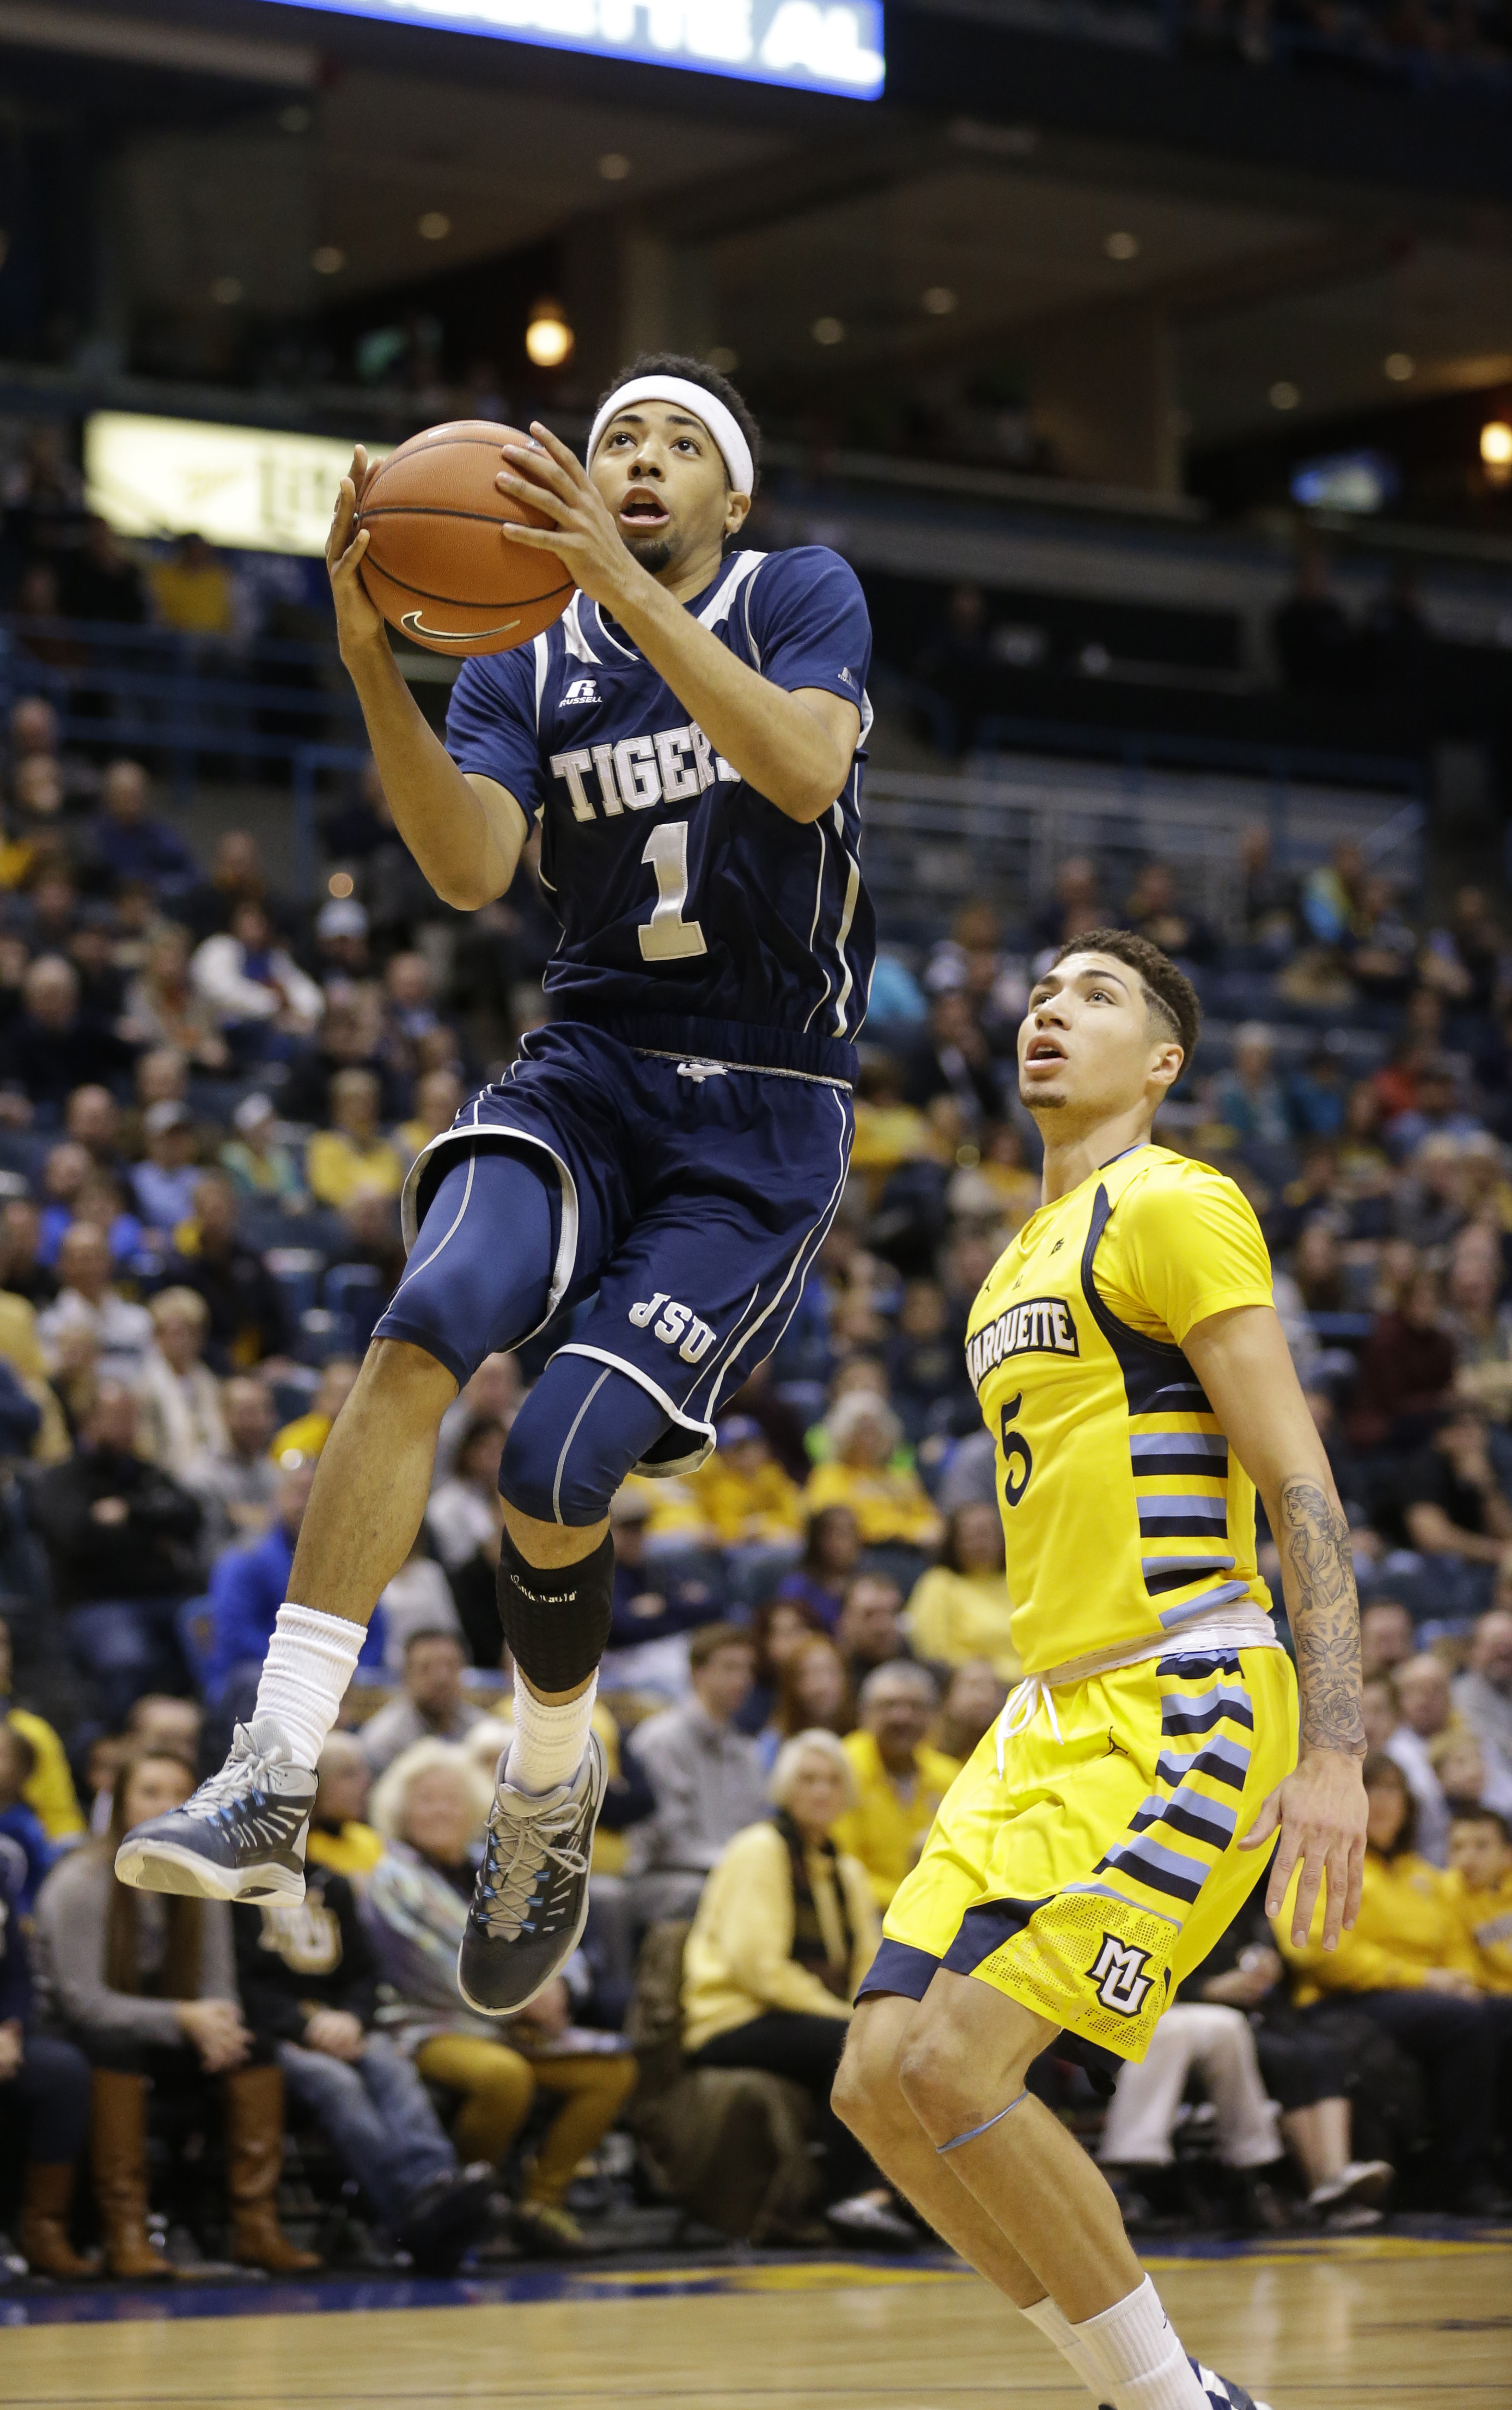 Jackson State's Chace Franklin (1) drives to the basket against Marquette's Sandy Cohen III in the first half of an NCAA college basketball game Sunday, Nov. 29, 2015, in Milwaukee. (AP Photo/Jeffrey Phelps)